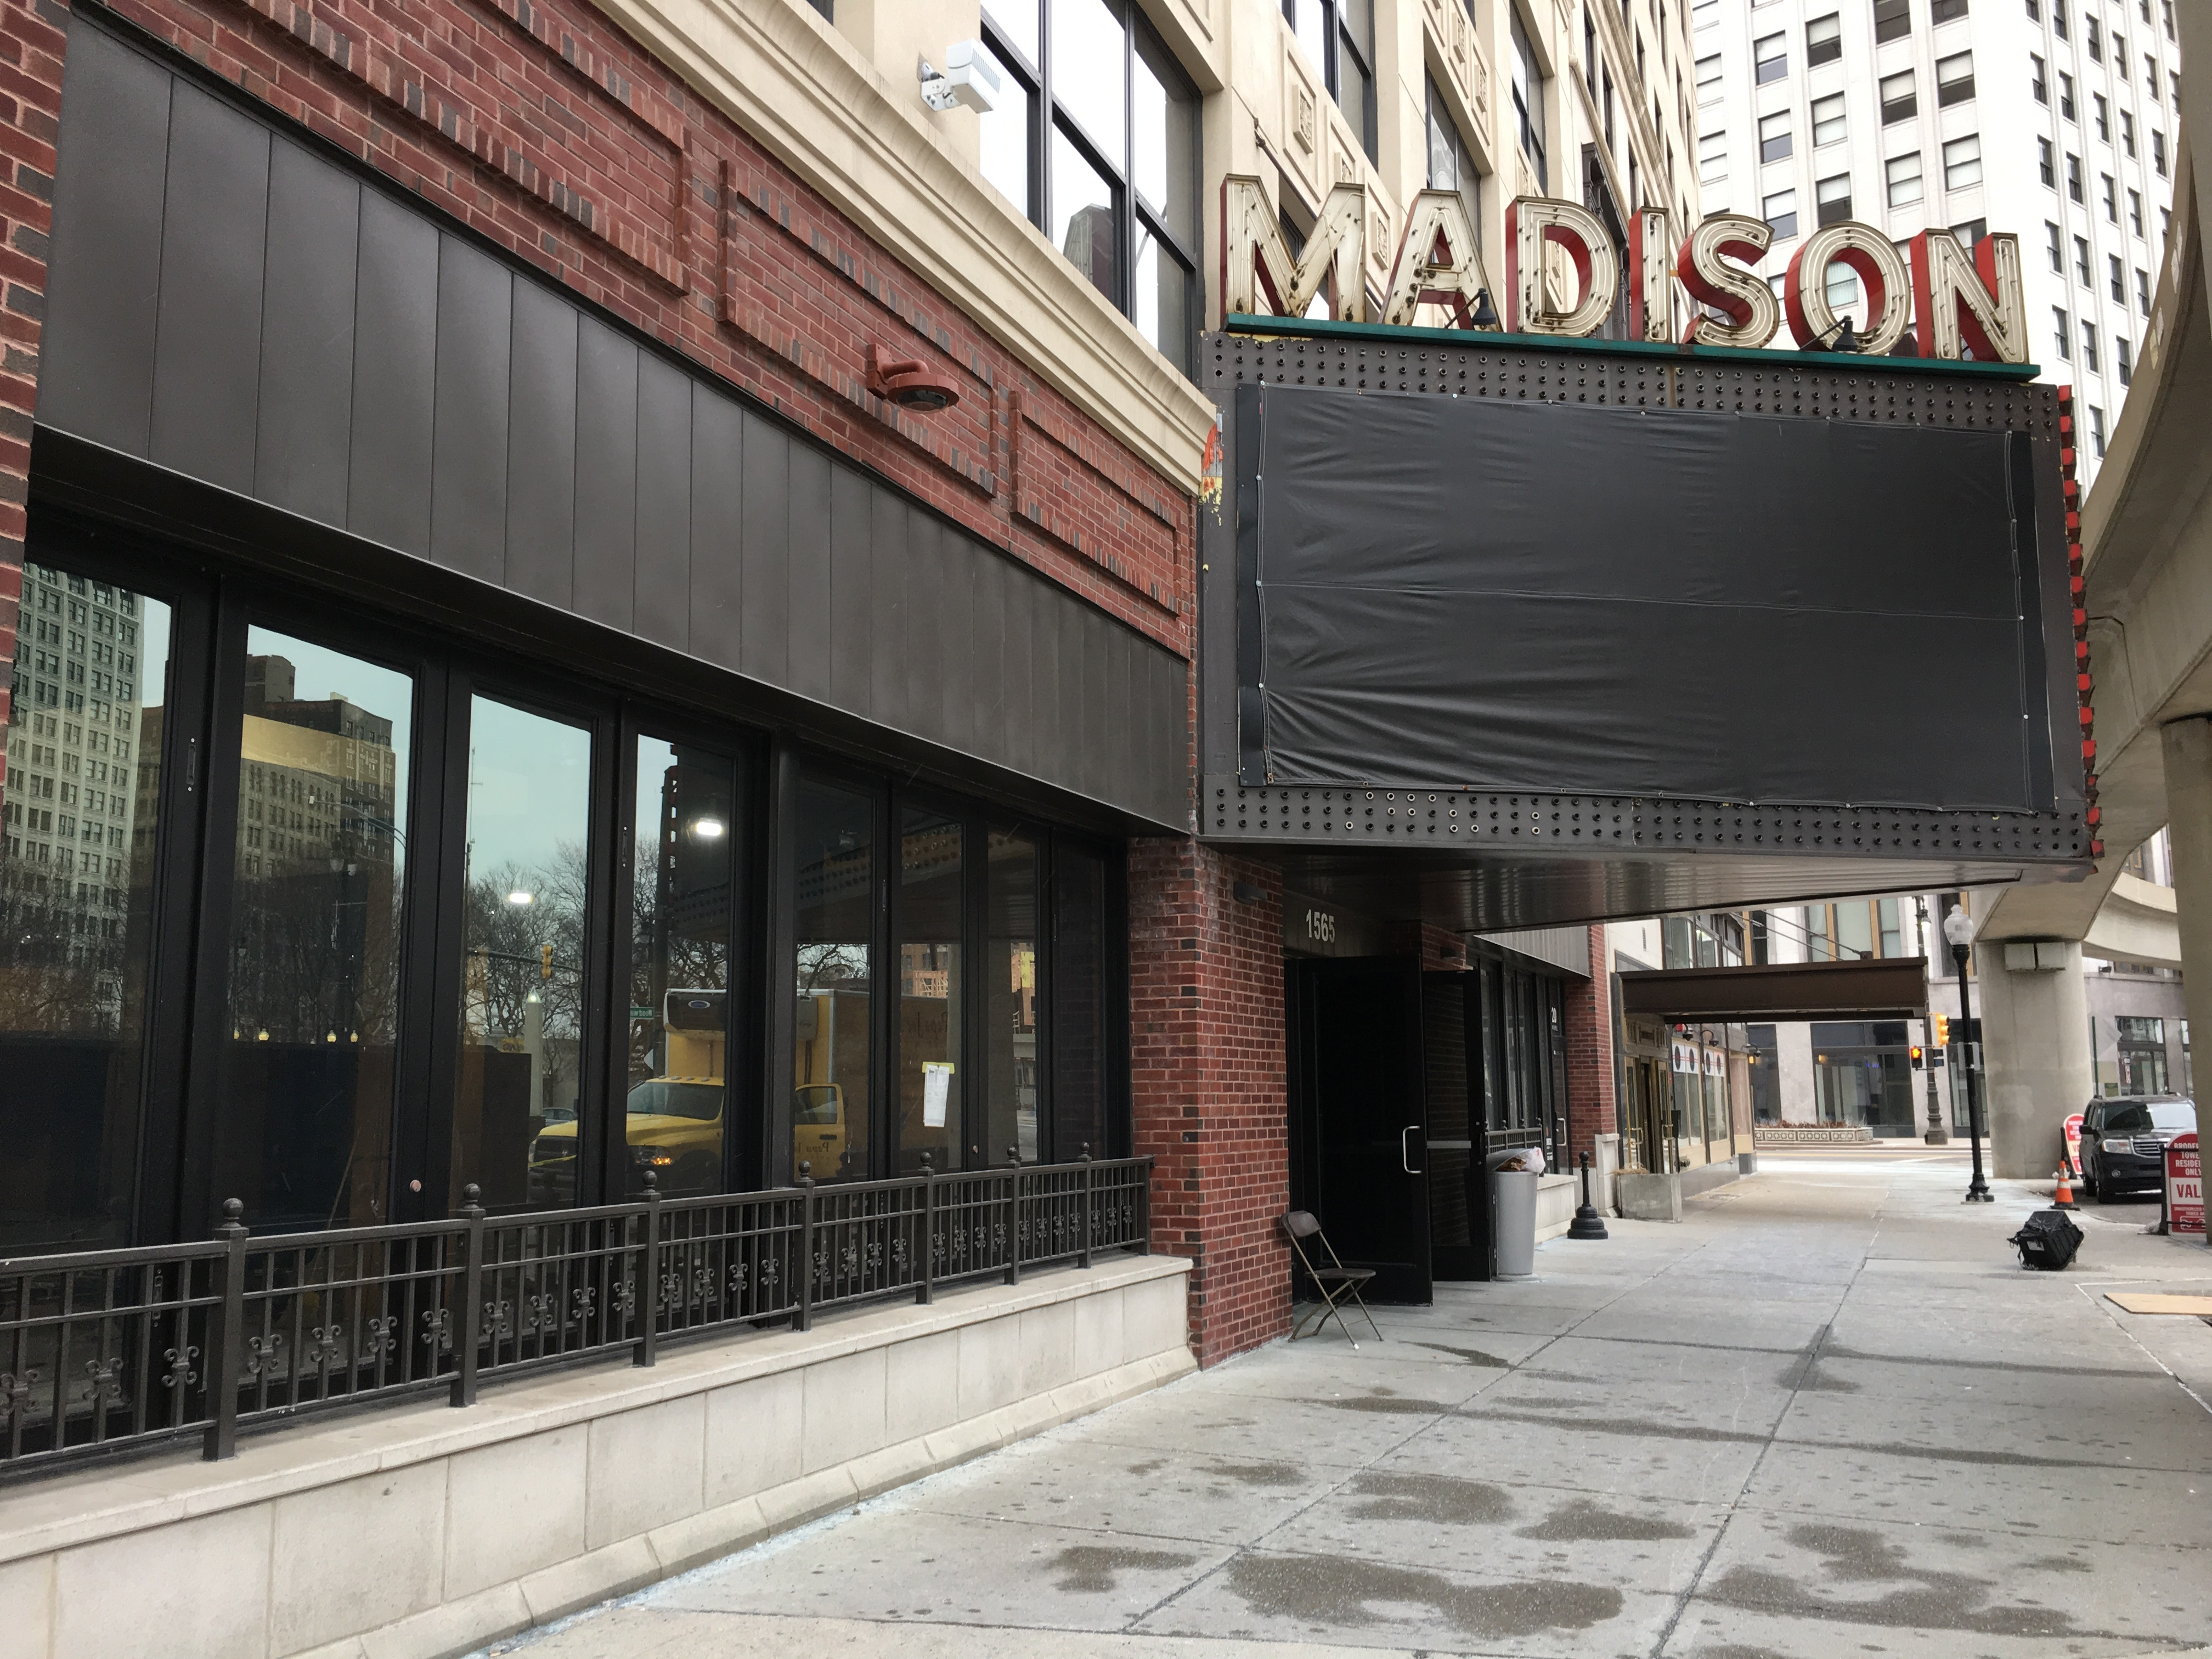 A photo of the Madison Building sign and Buddy's restaurant front with blacked out windows.